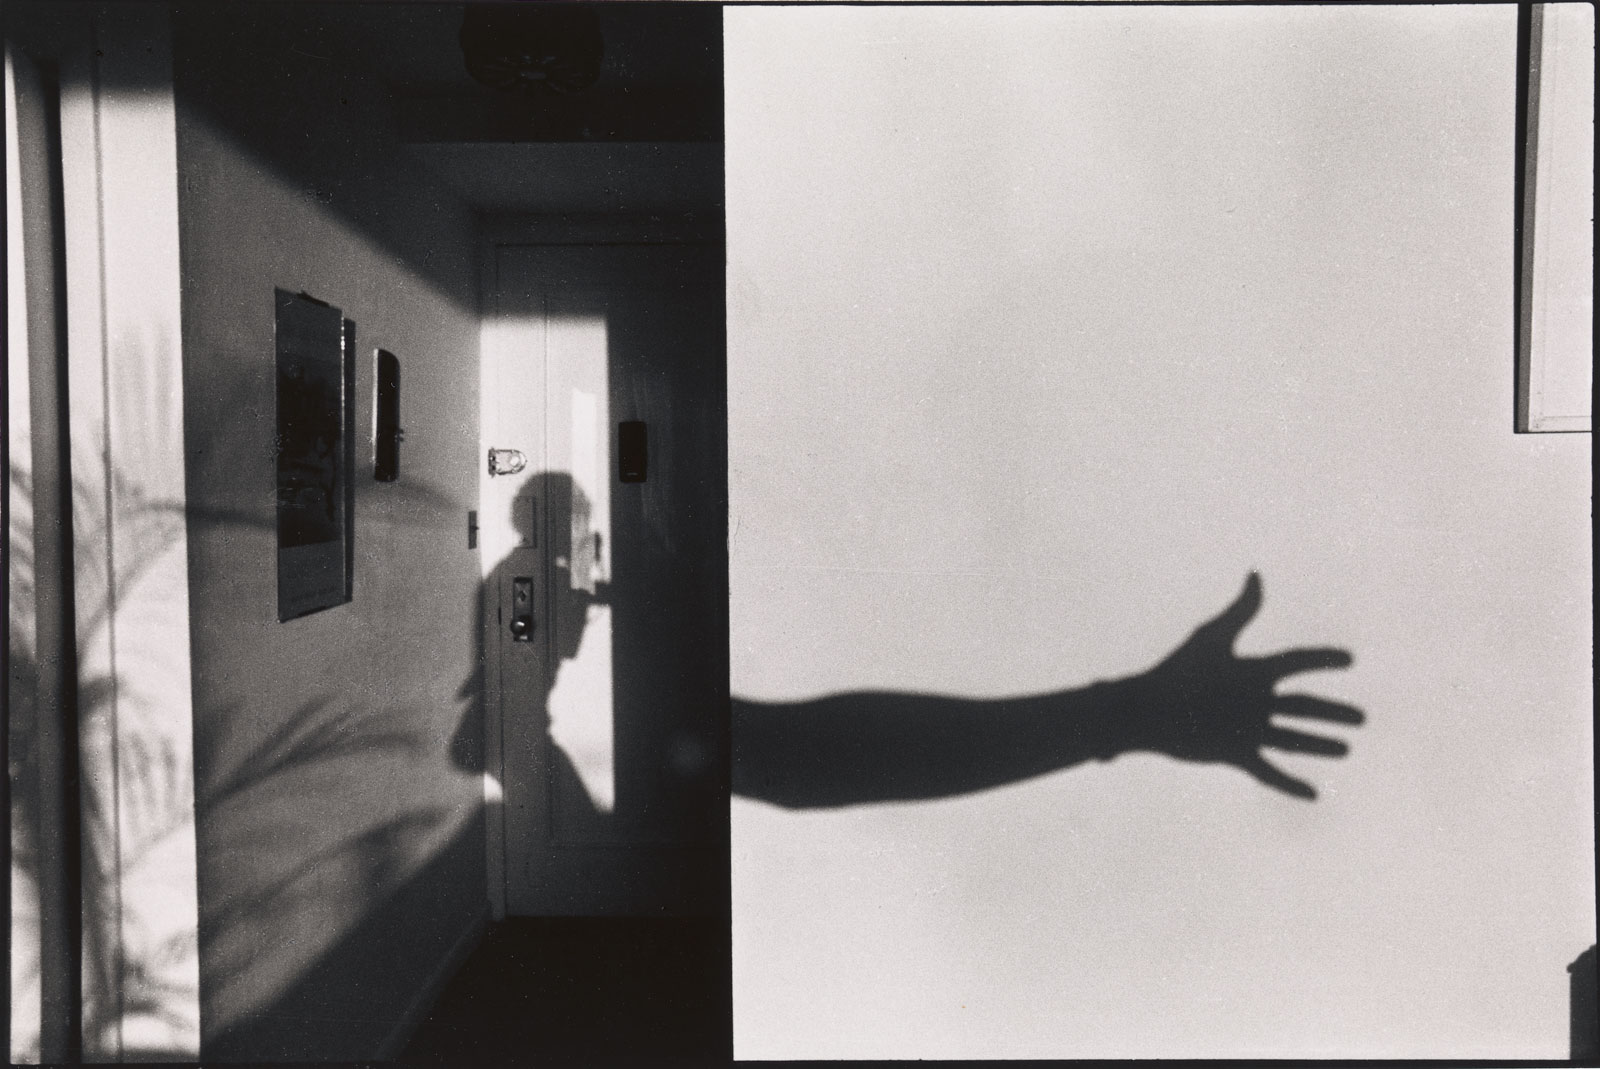 The shadow of the photographer's body and outstretched hand on a sunlit wall